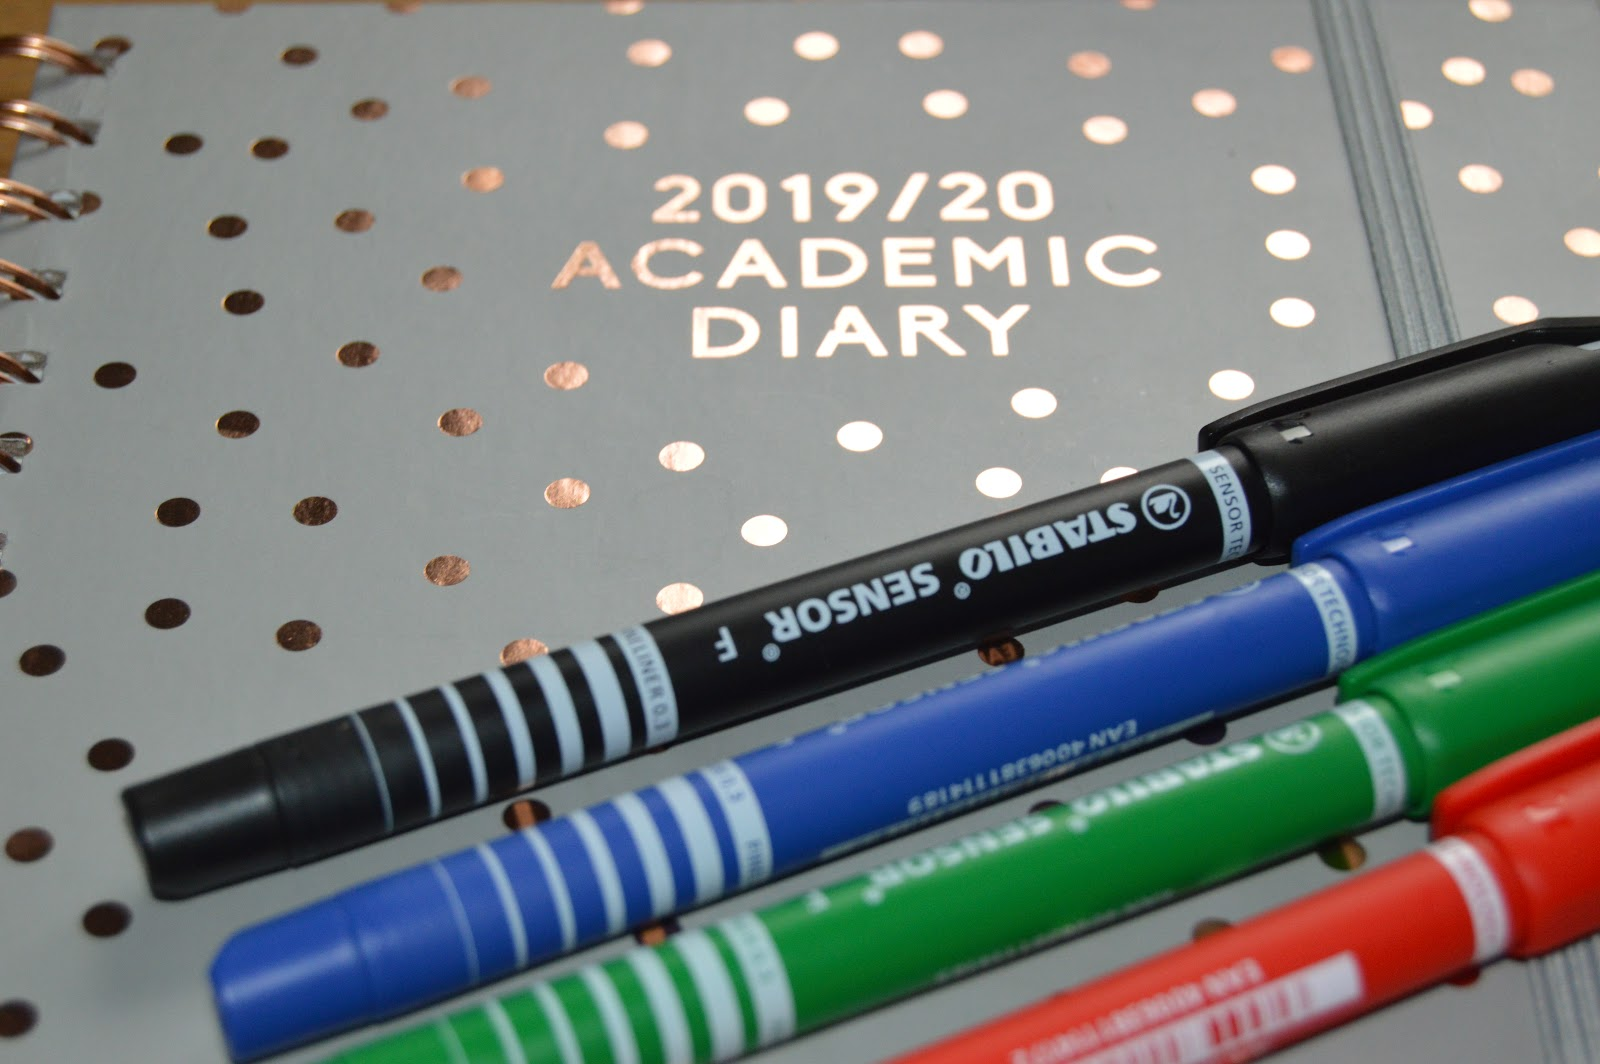 An academic diary and pens